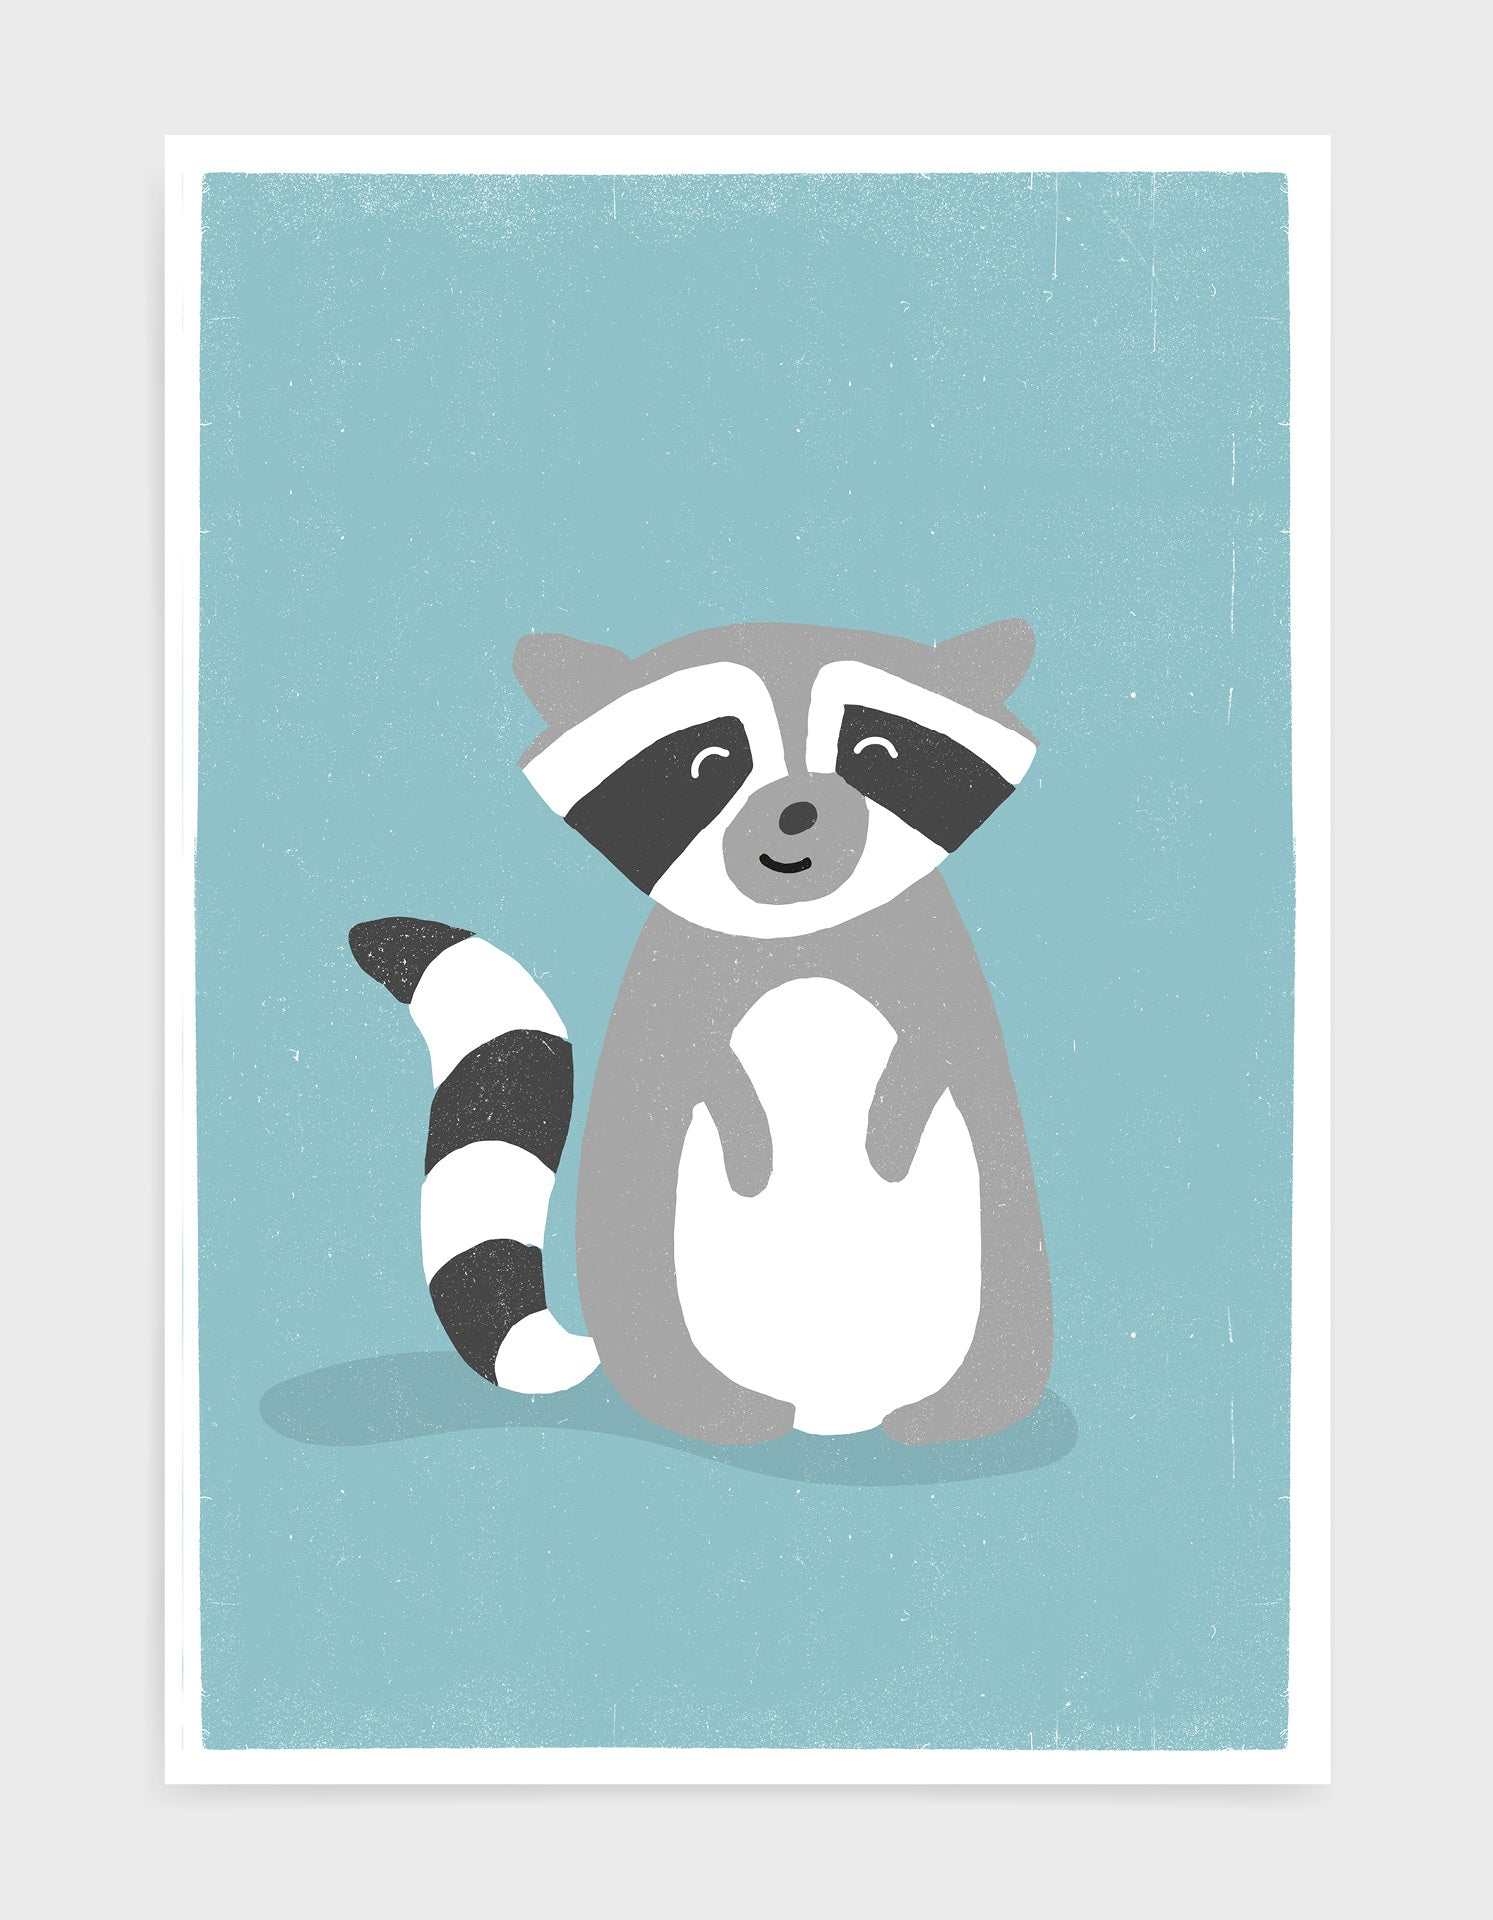 art print of a cute racoon on a light blue background